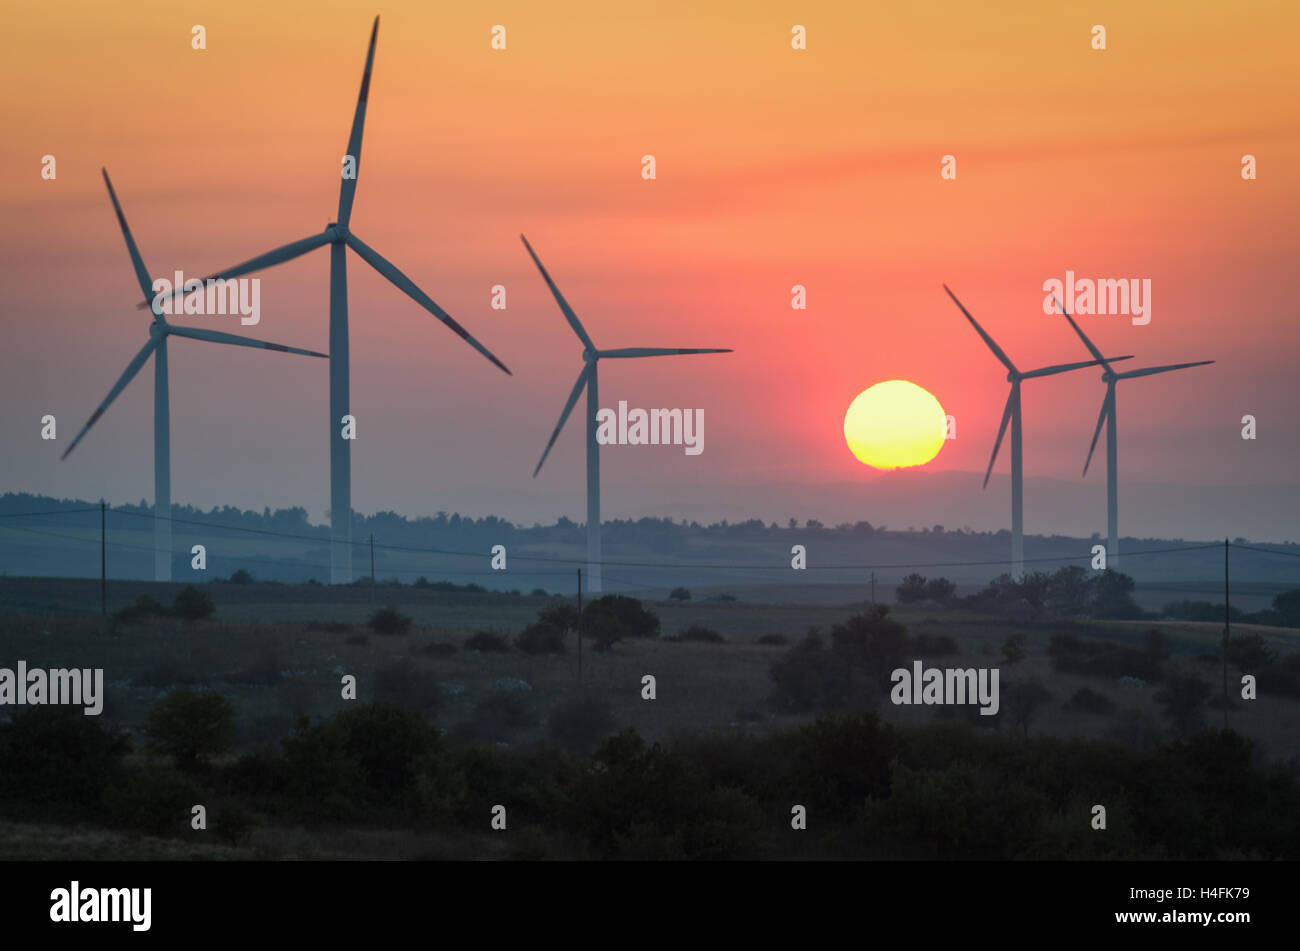 Wind turbines at sunset - Renewable energy concept - Stock Image